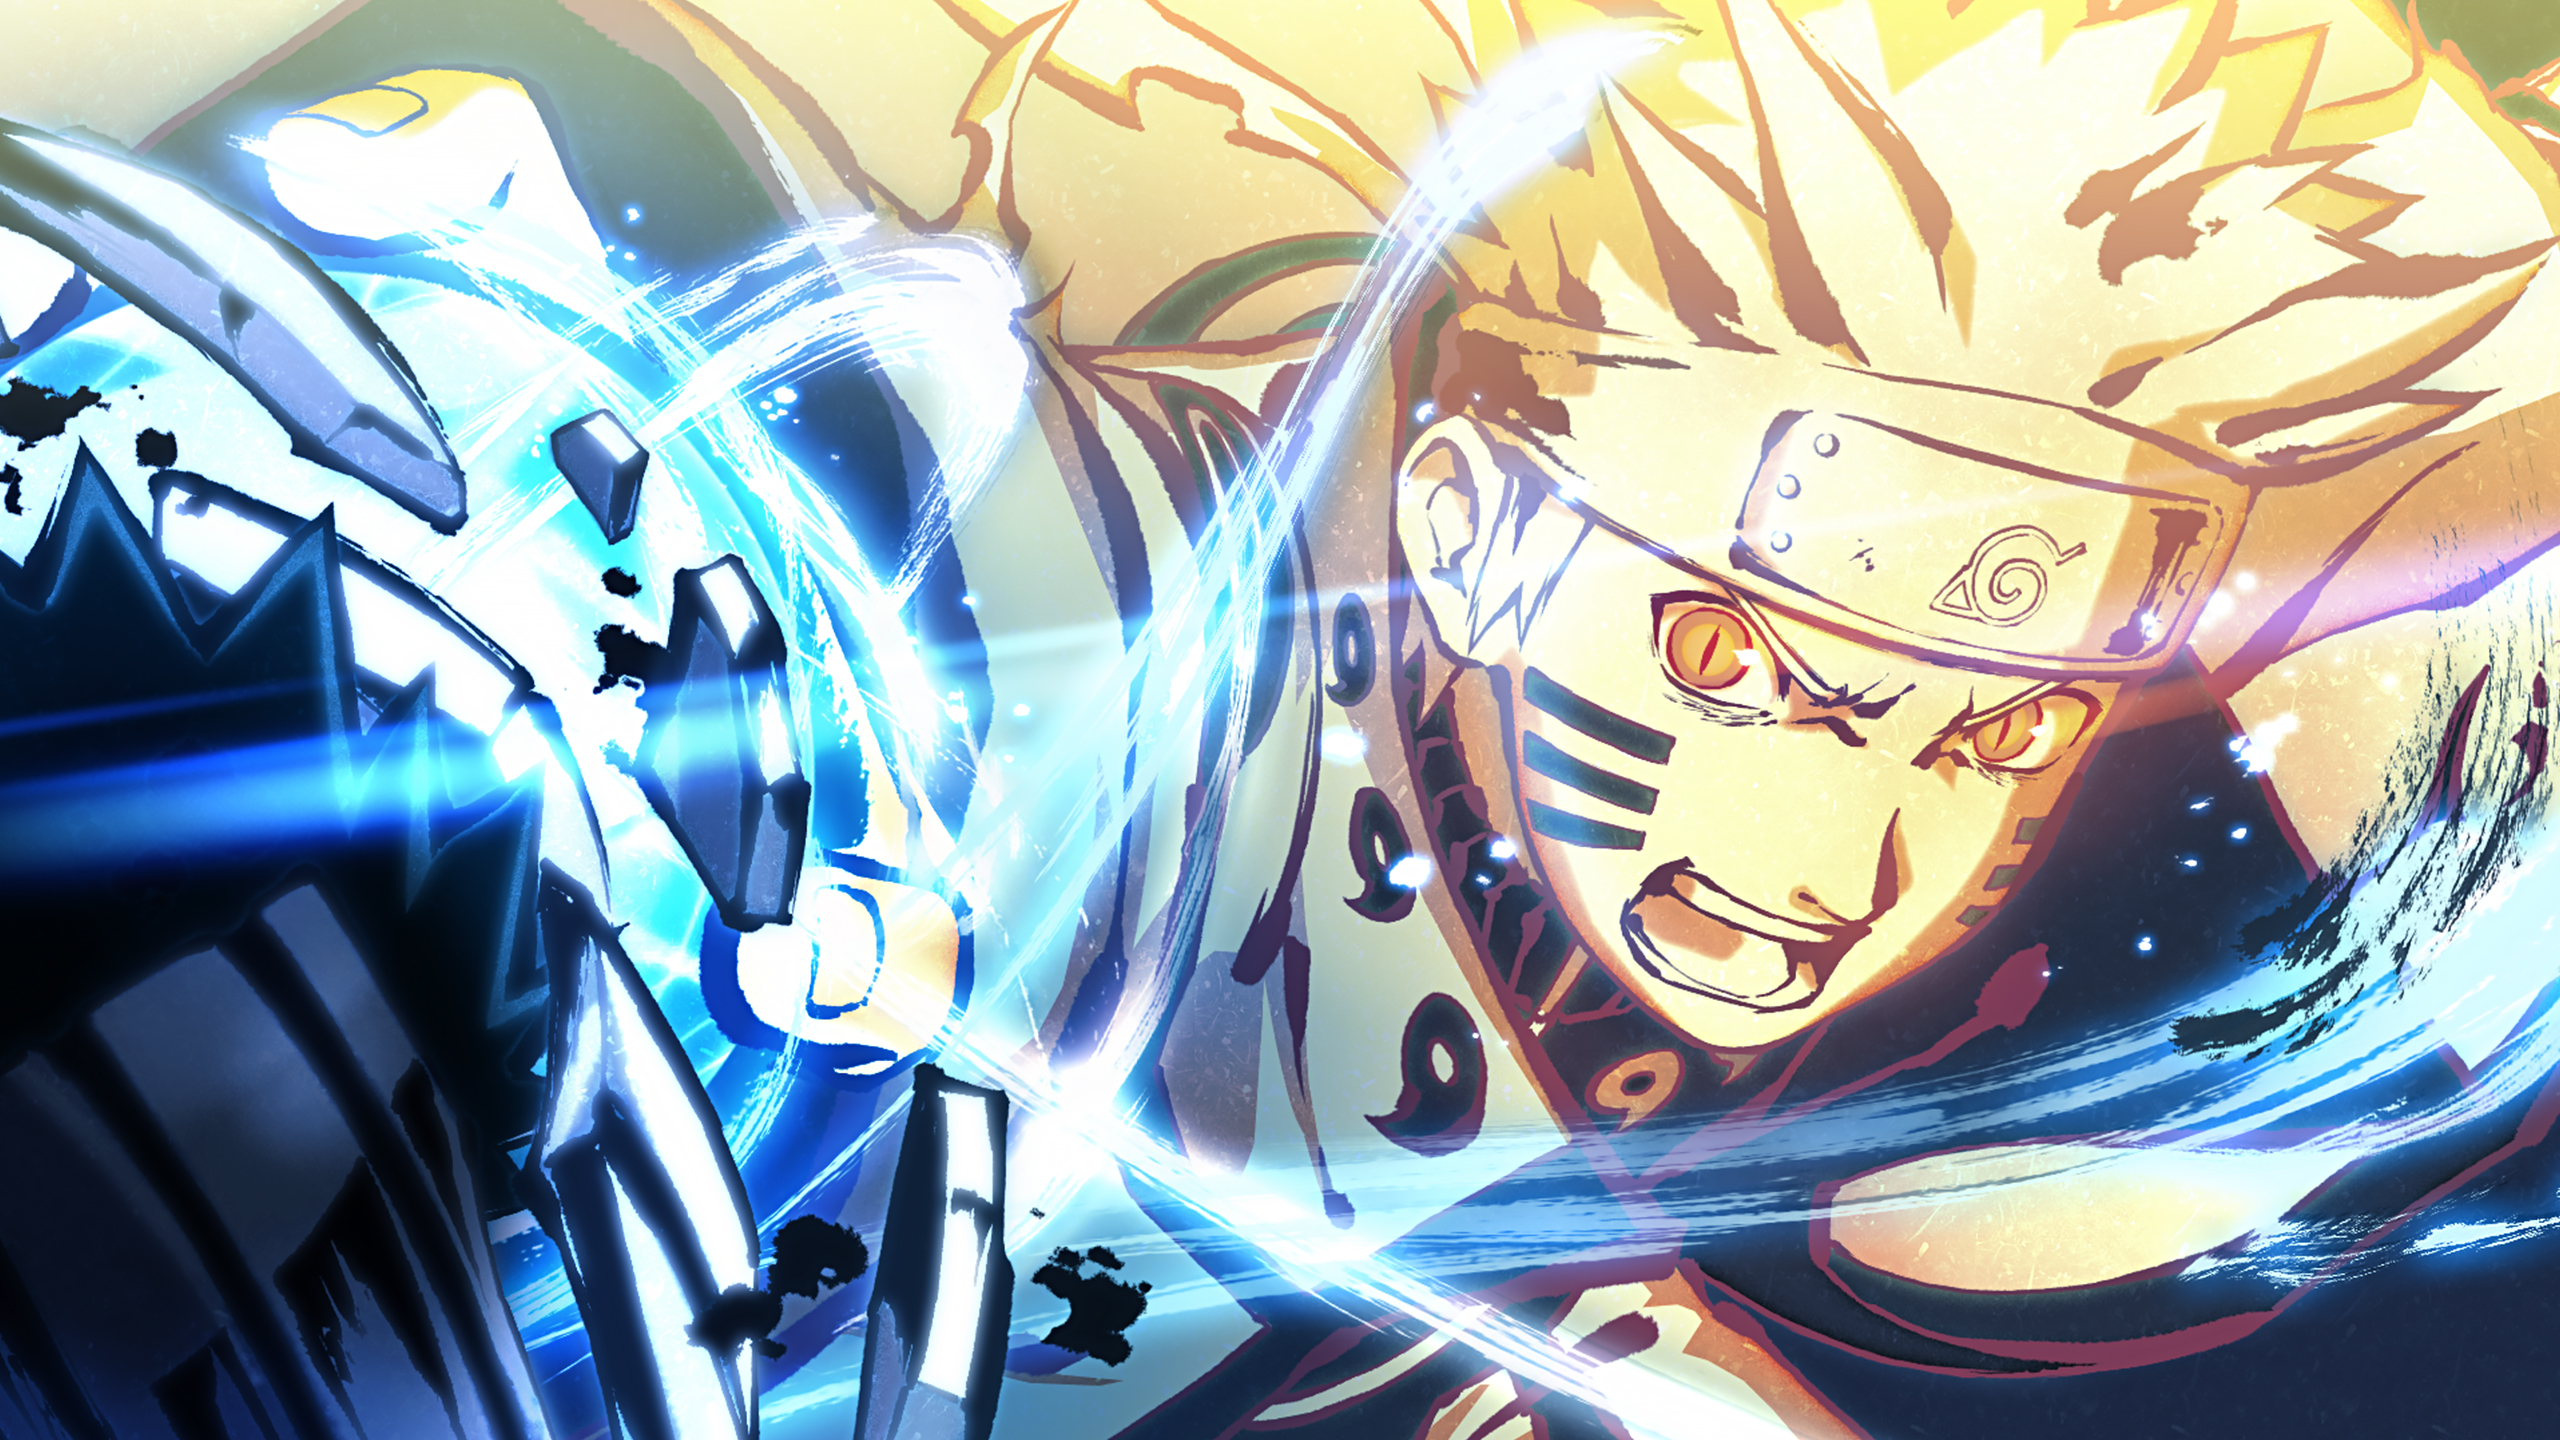 Anime Wallpaper Naruto Shippuden: Ultimate Ninja Storm 4